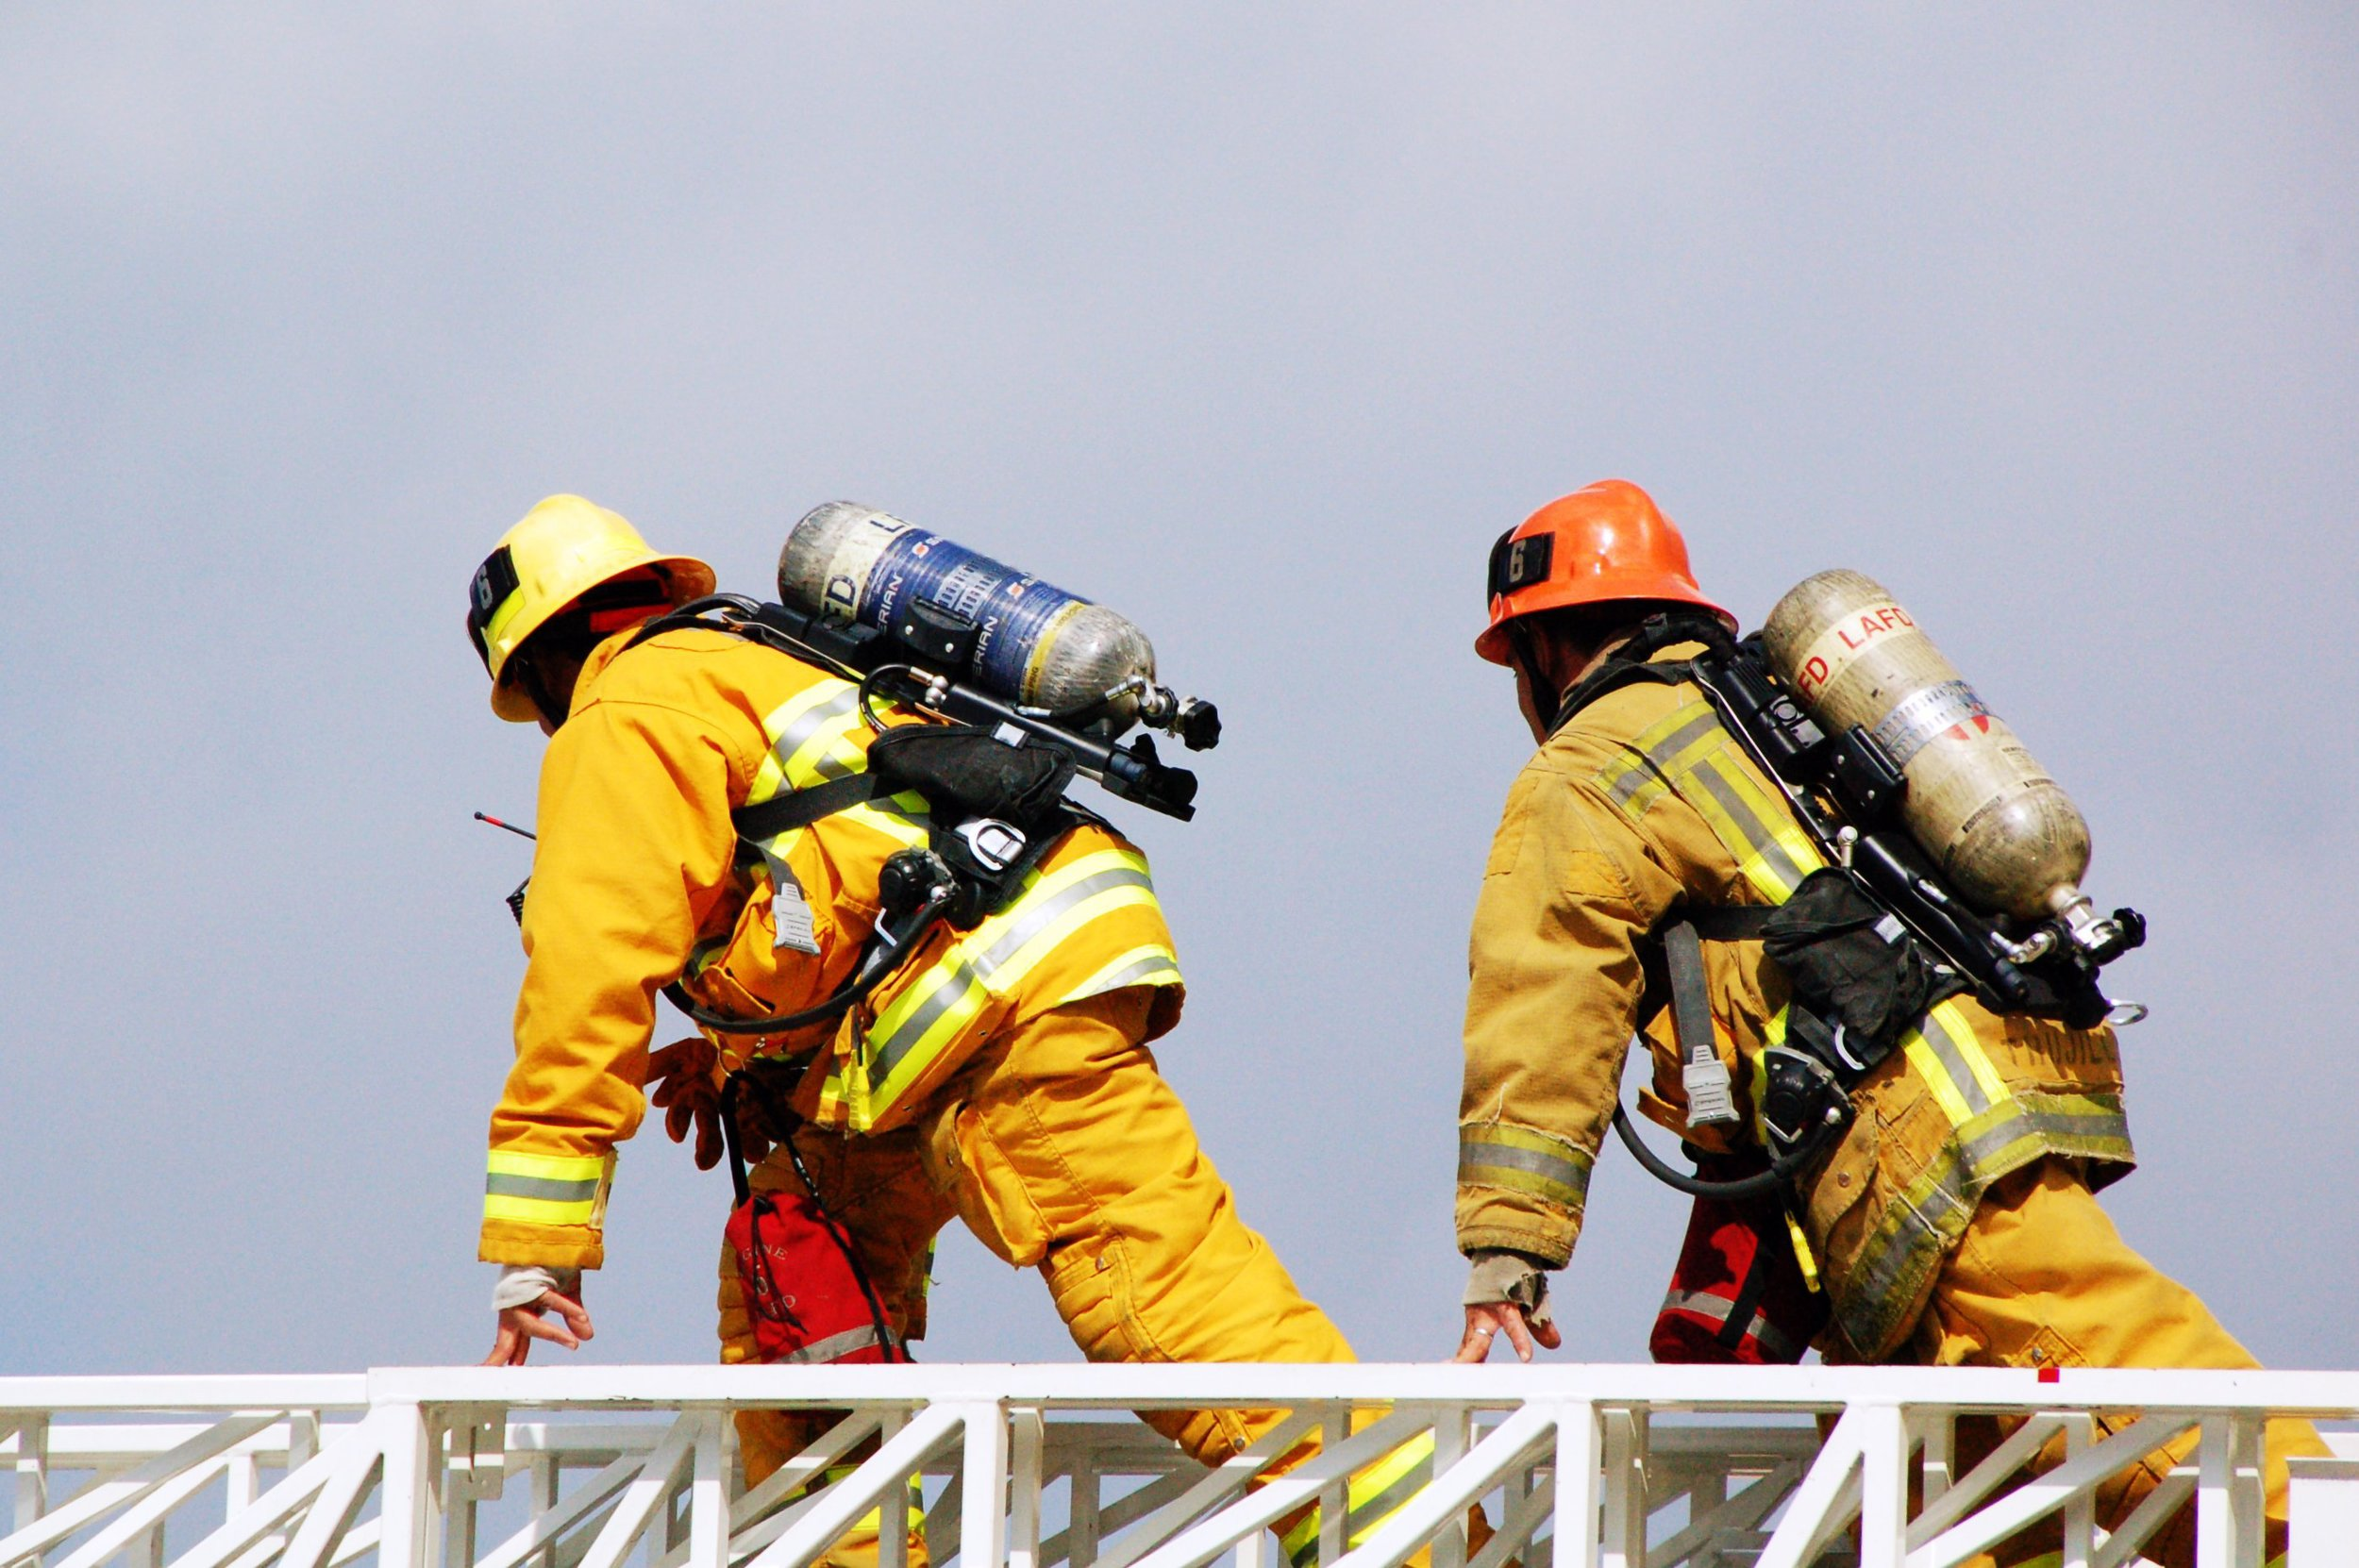 Firefighters/climbers